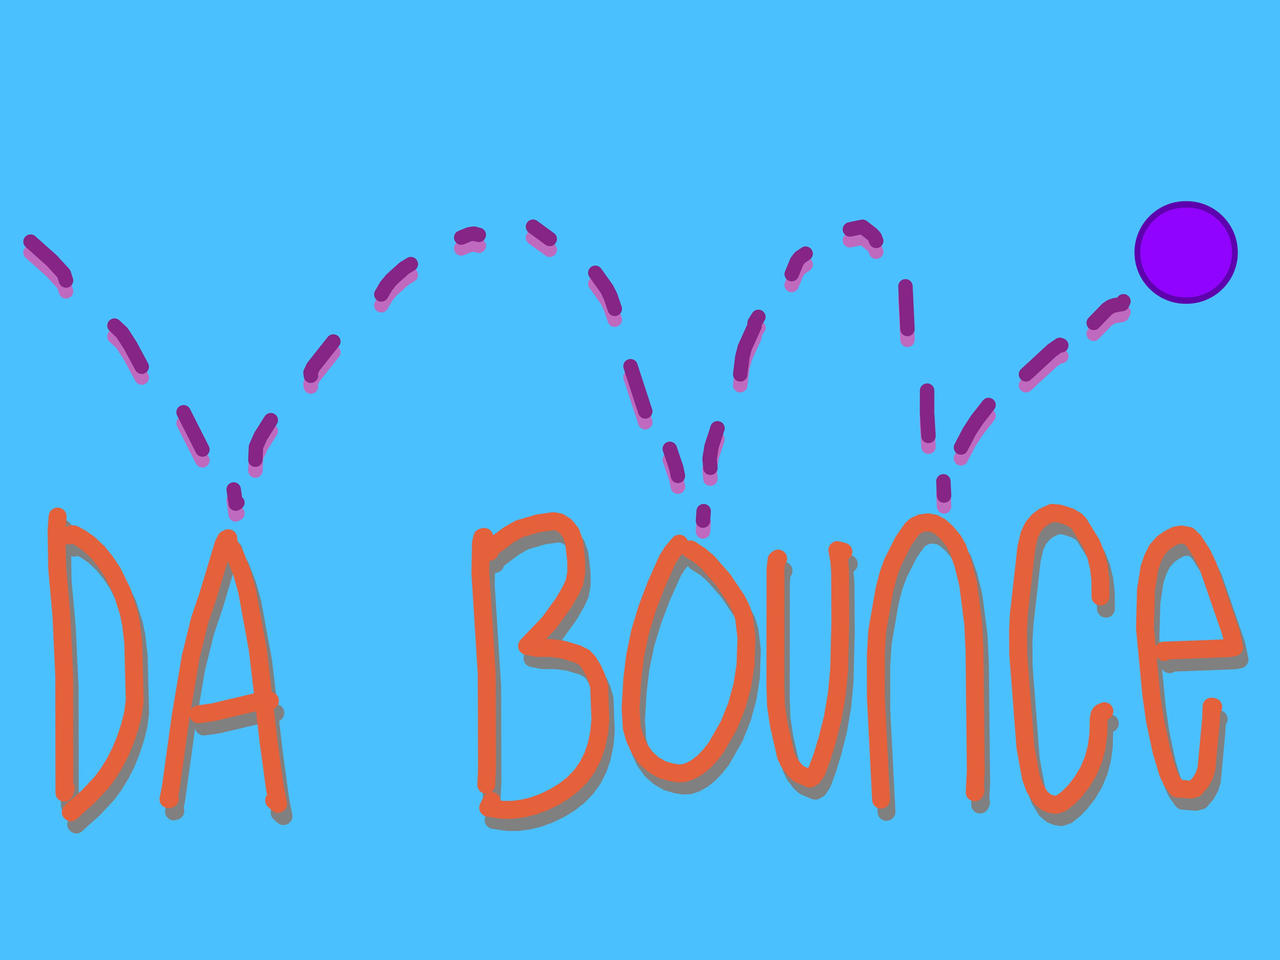 Da Bounce - 7 Star Sky Flash Kick